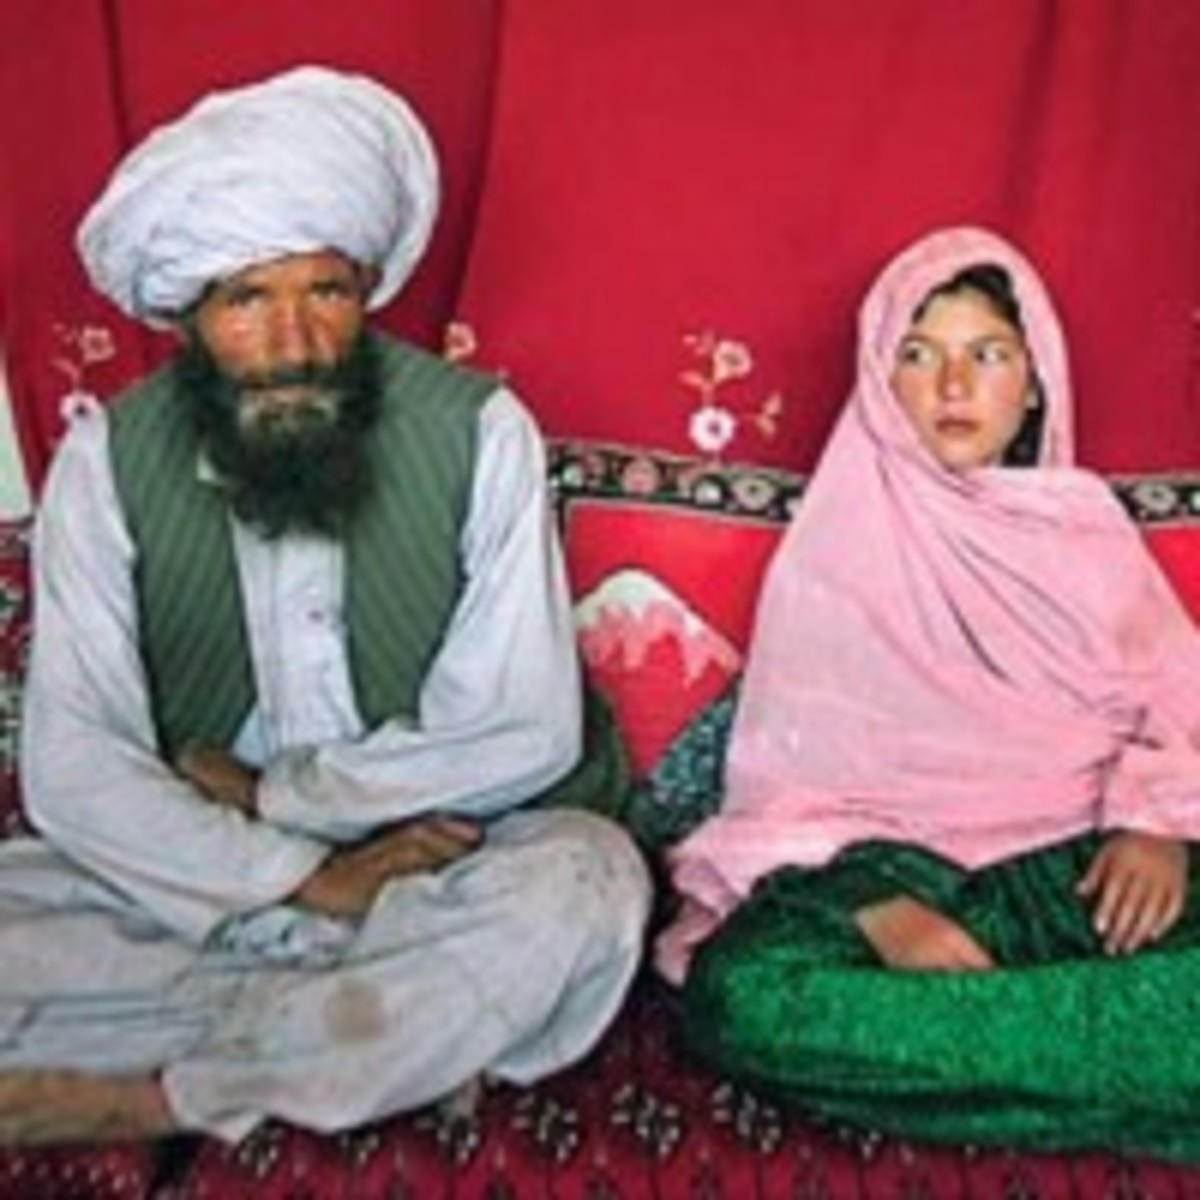 Young Child Bride and her husband in Syria